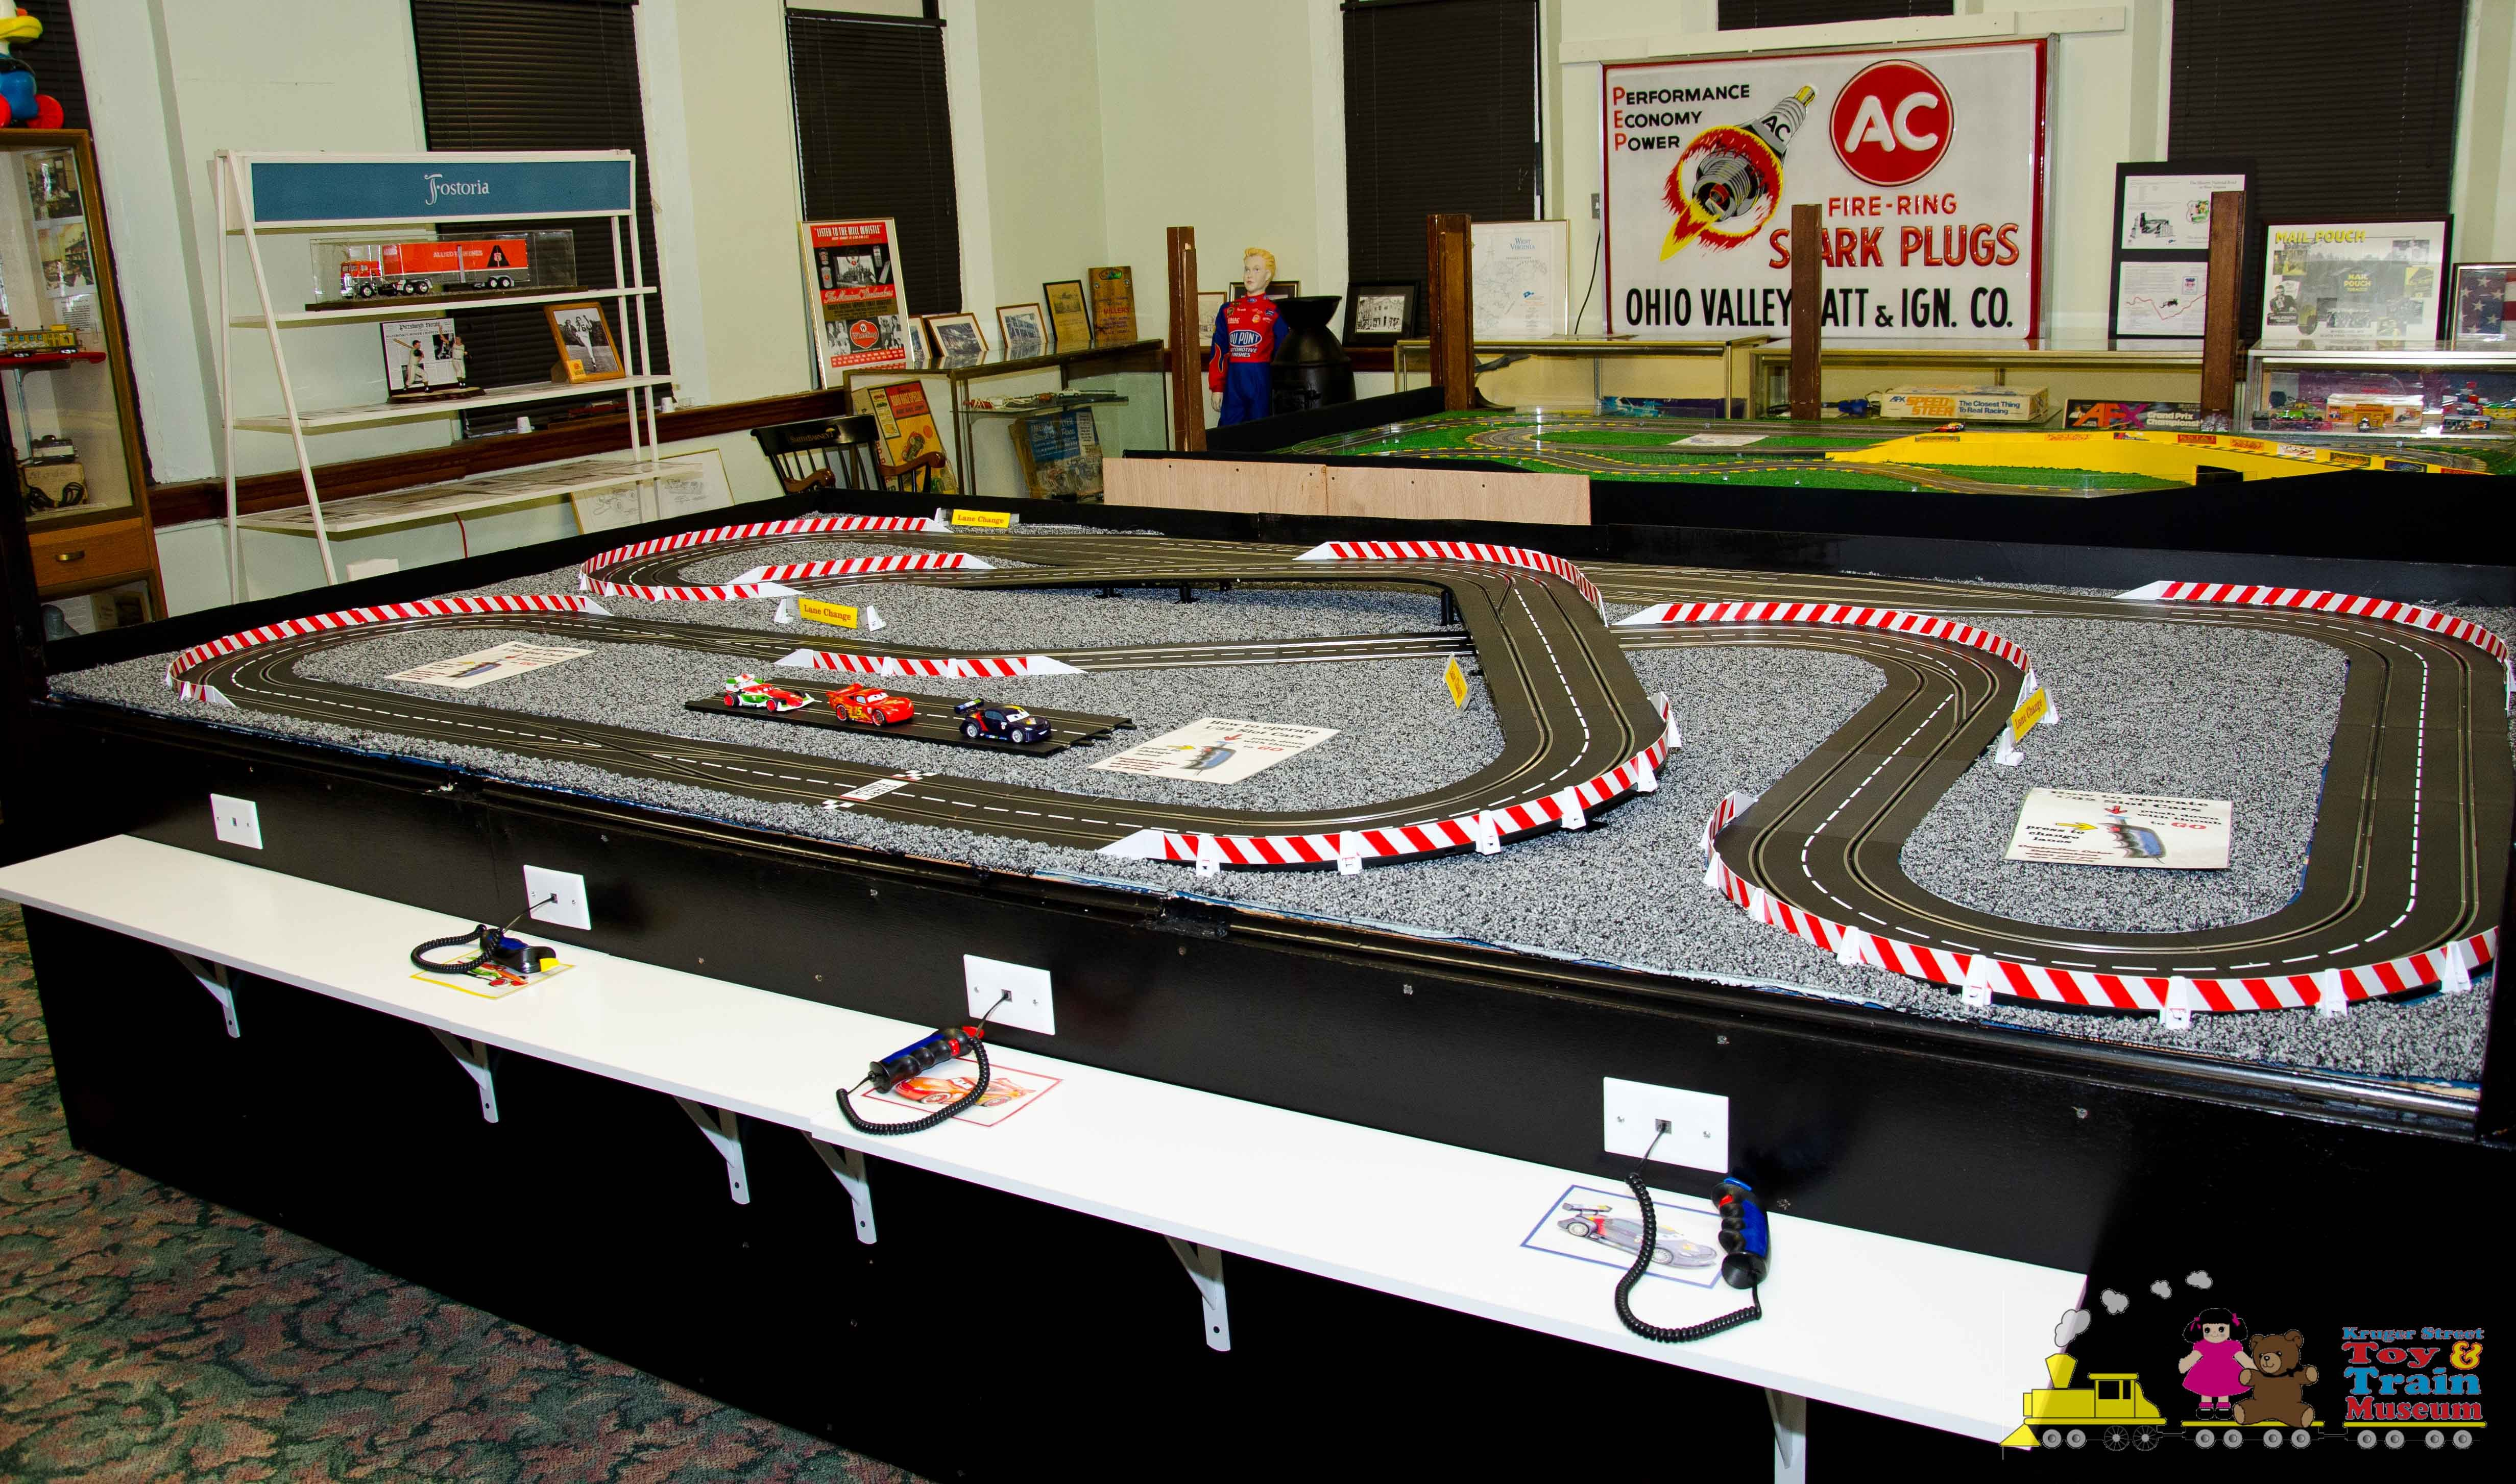 One of the slot car models on display within the museum.